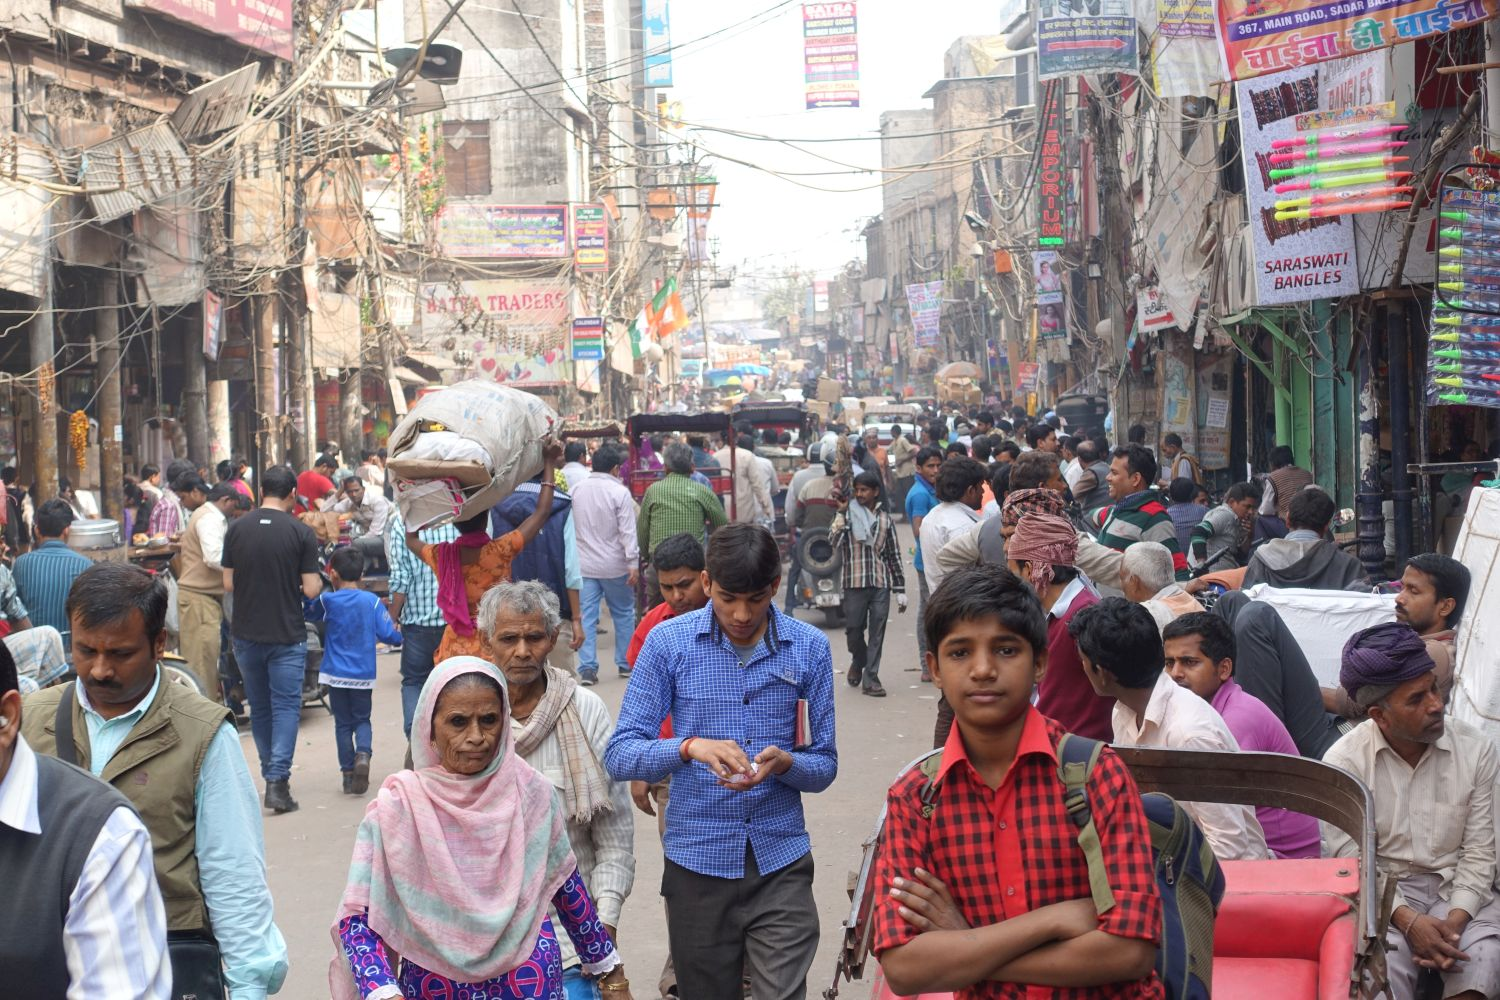 Old Delhi | a crowded street in Chandni Chowk | street photography ©sandrine cohen